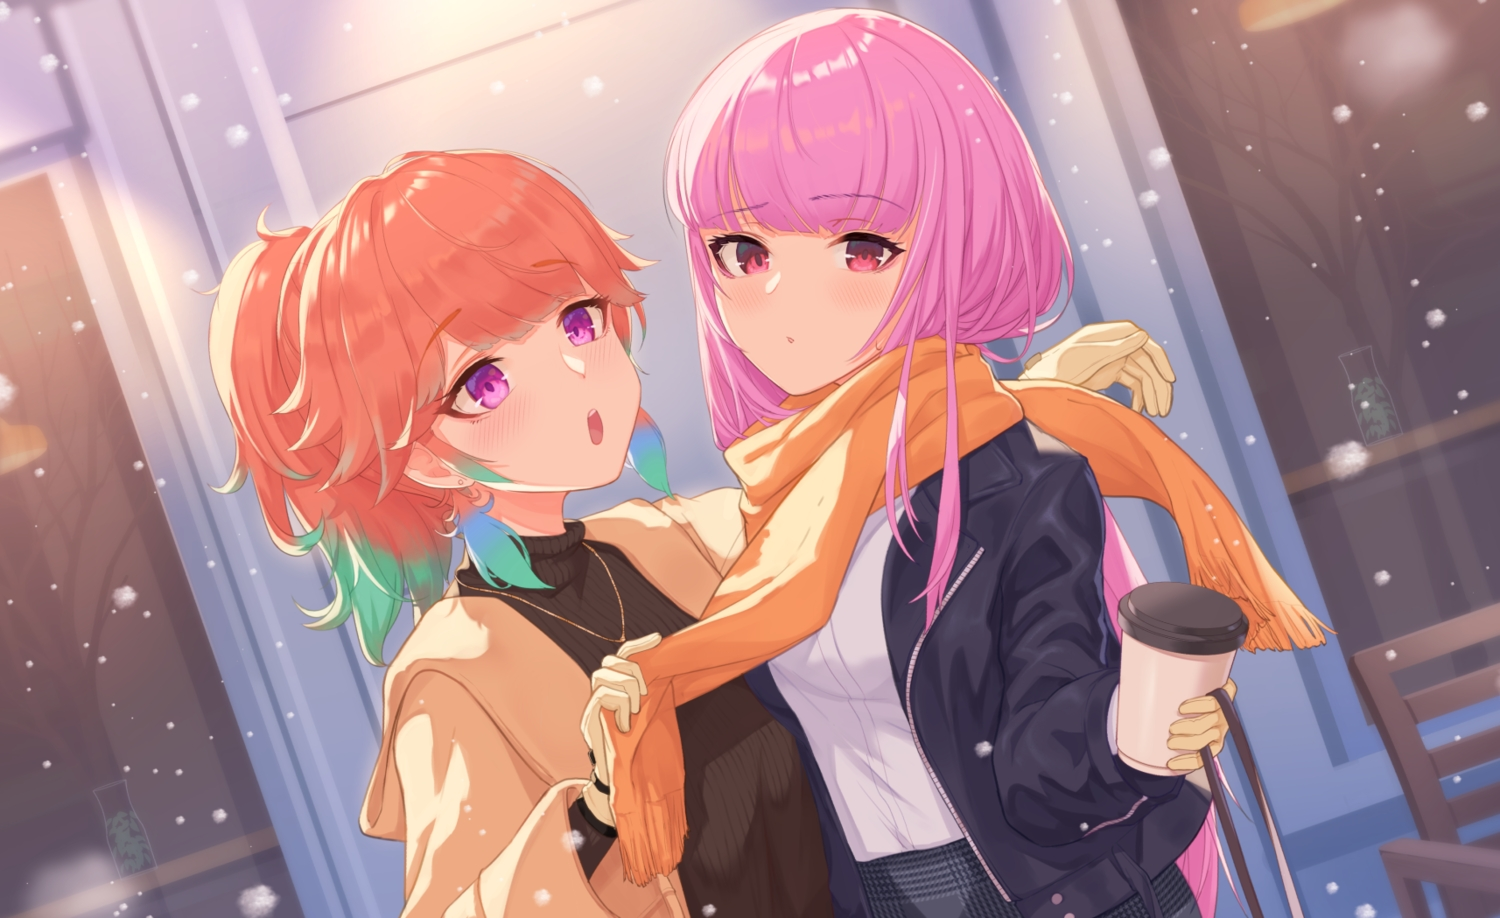 2girls blush drink gloves hololive hoodie long_hair makamati mori_calliope necklace orange_hair pink_hair ponytail purple_eyes red_eyes scarf shoujo_ai takanashi_kiara winter